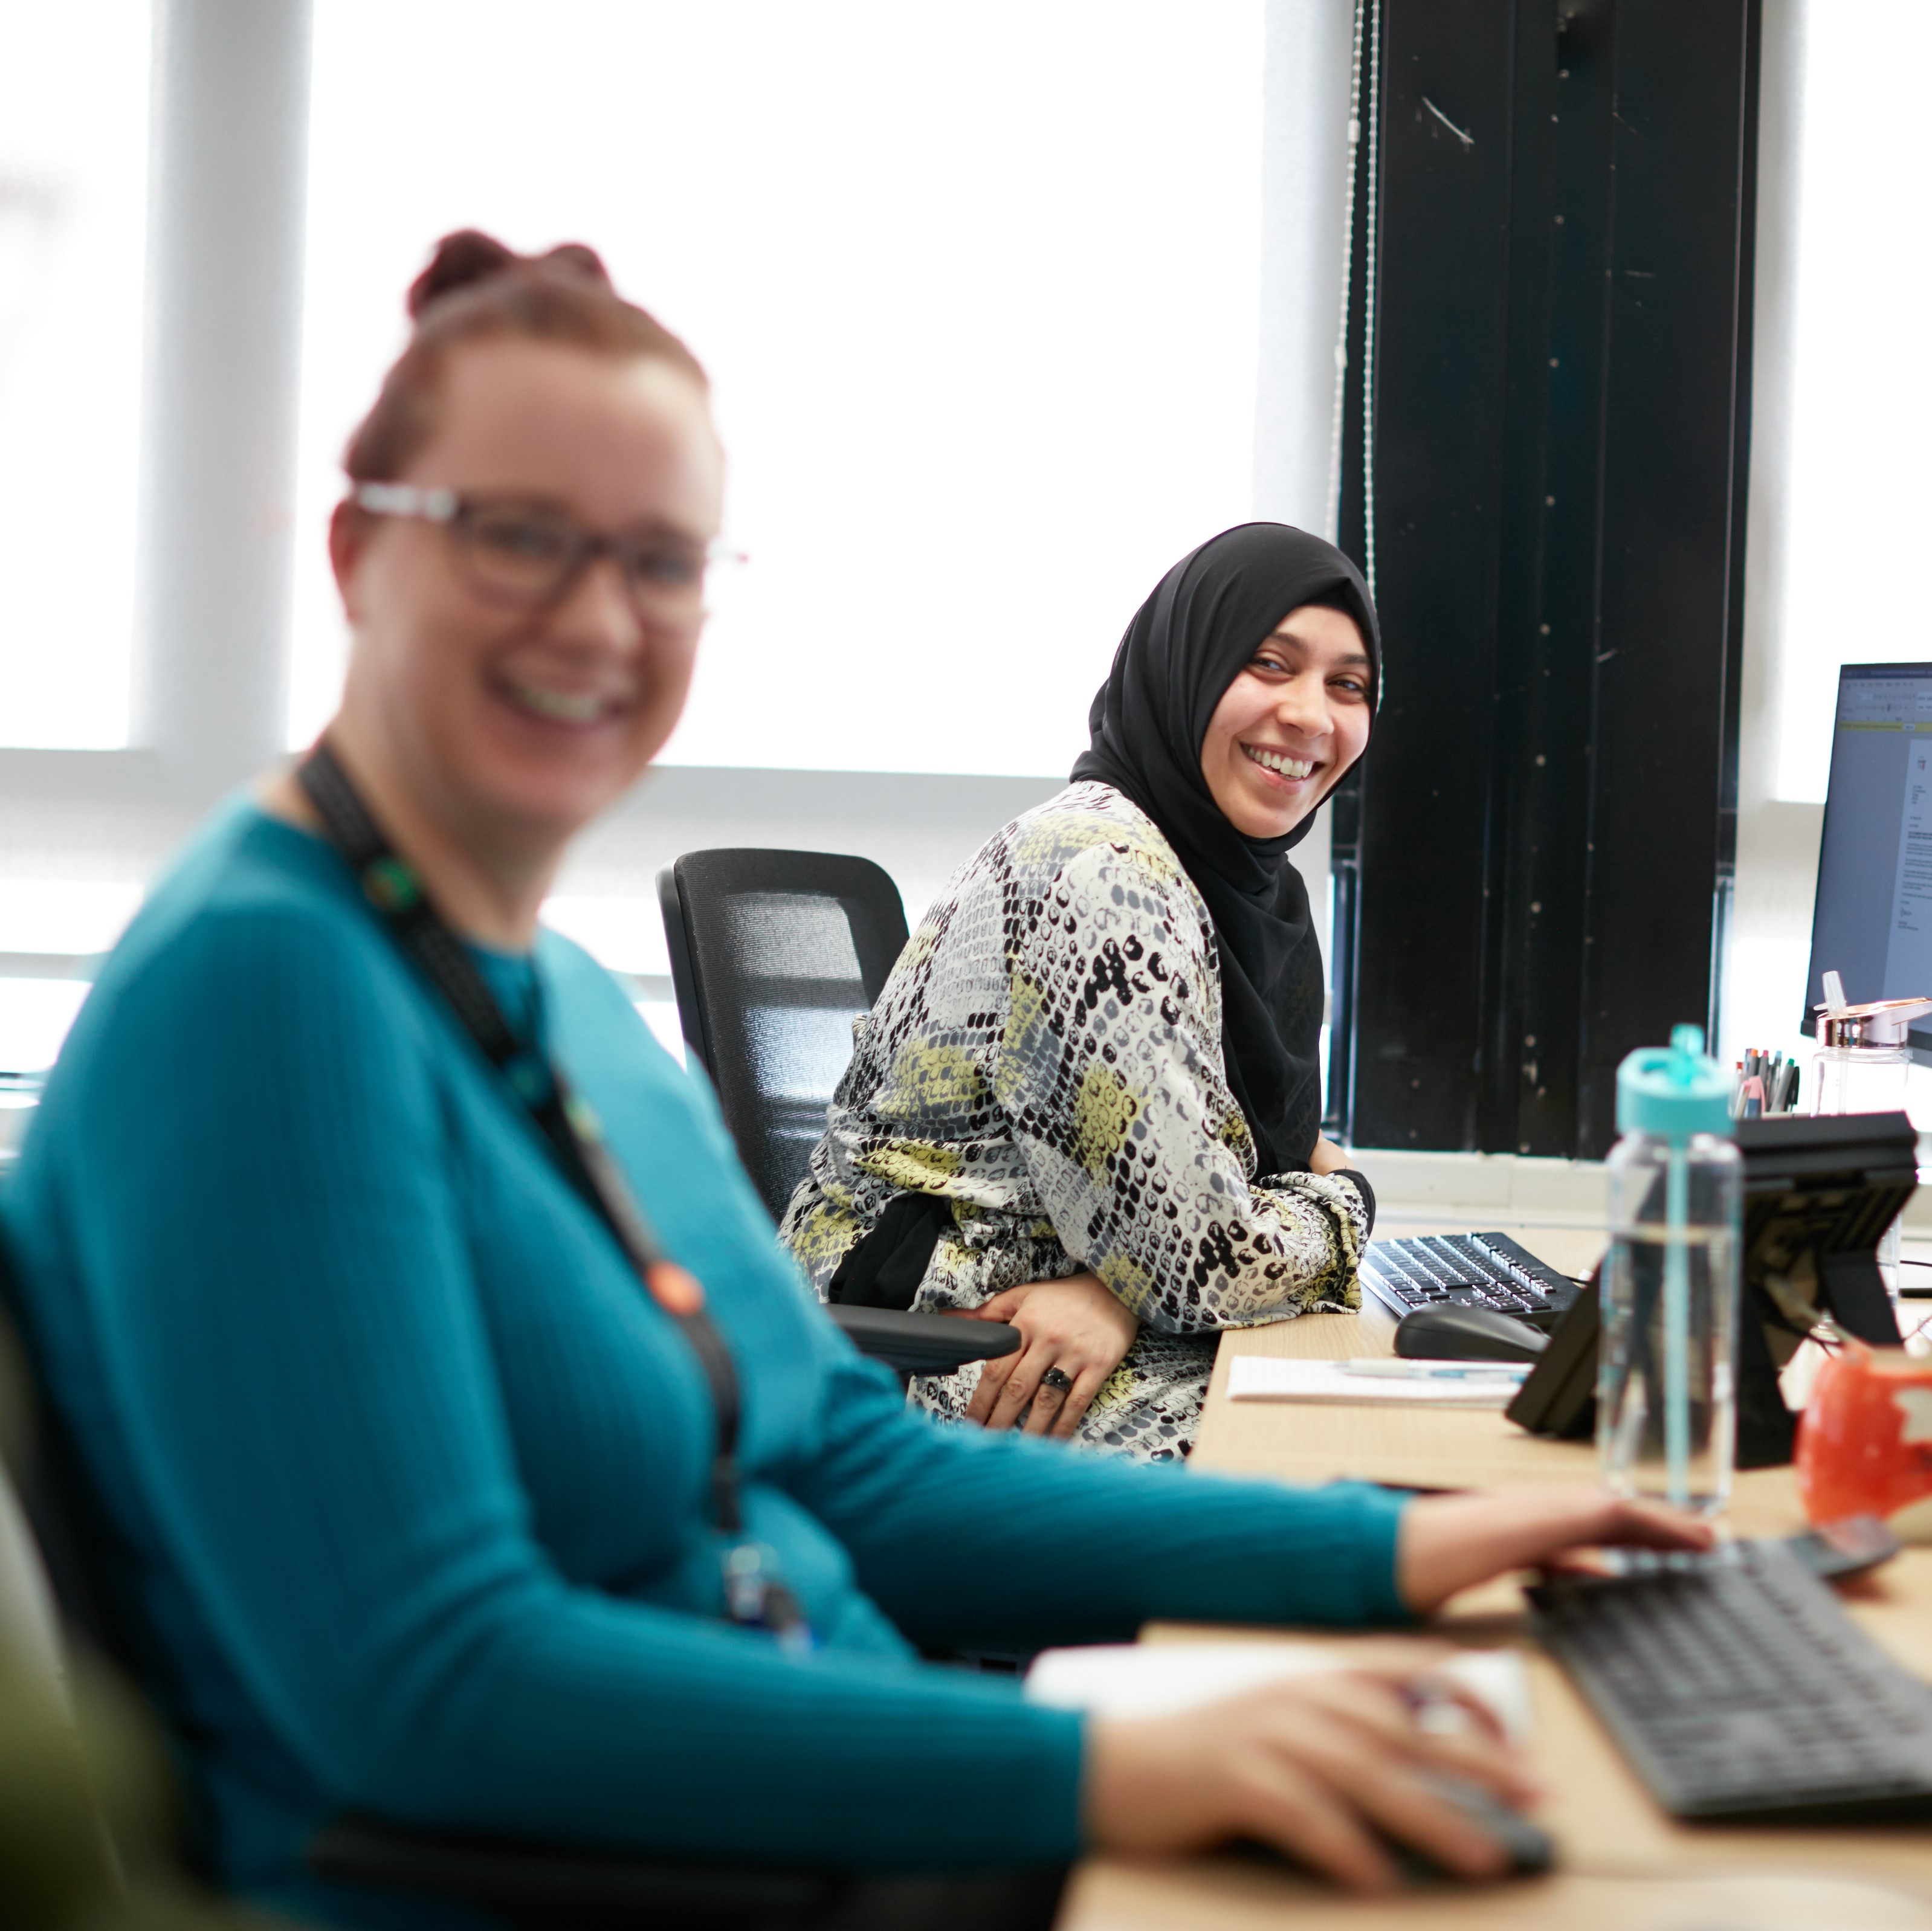 Two LPP female colleagues sit alongside each other at their desks. They are smiling and looking towards the camera.